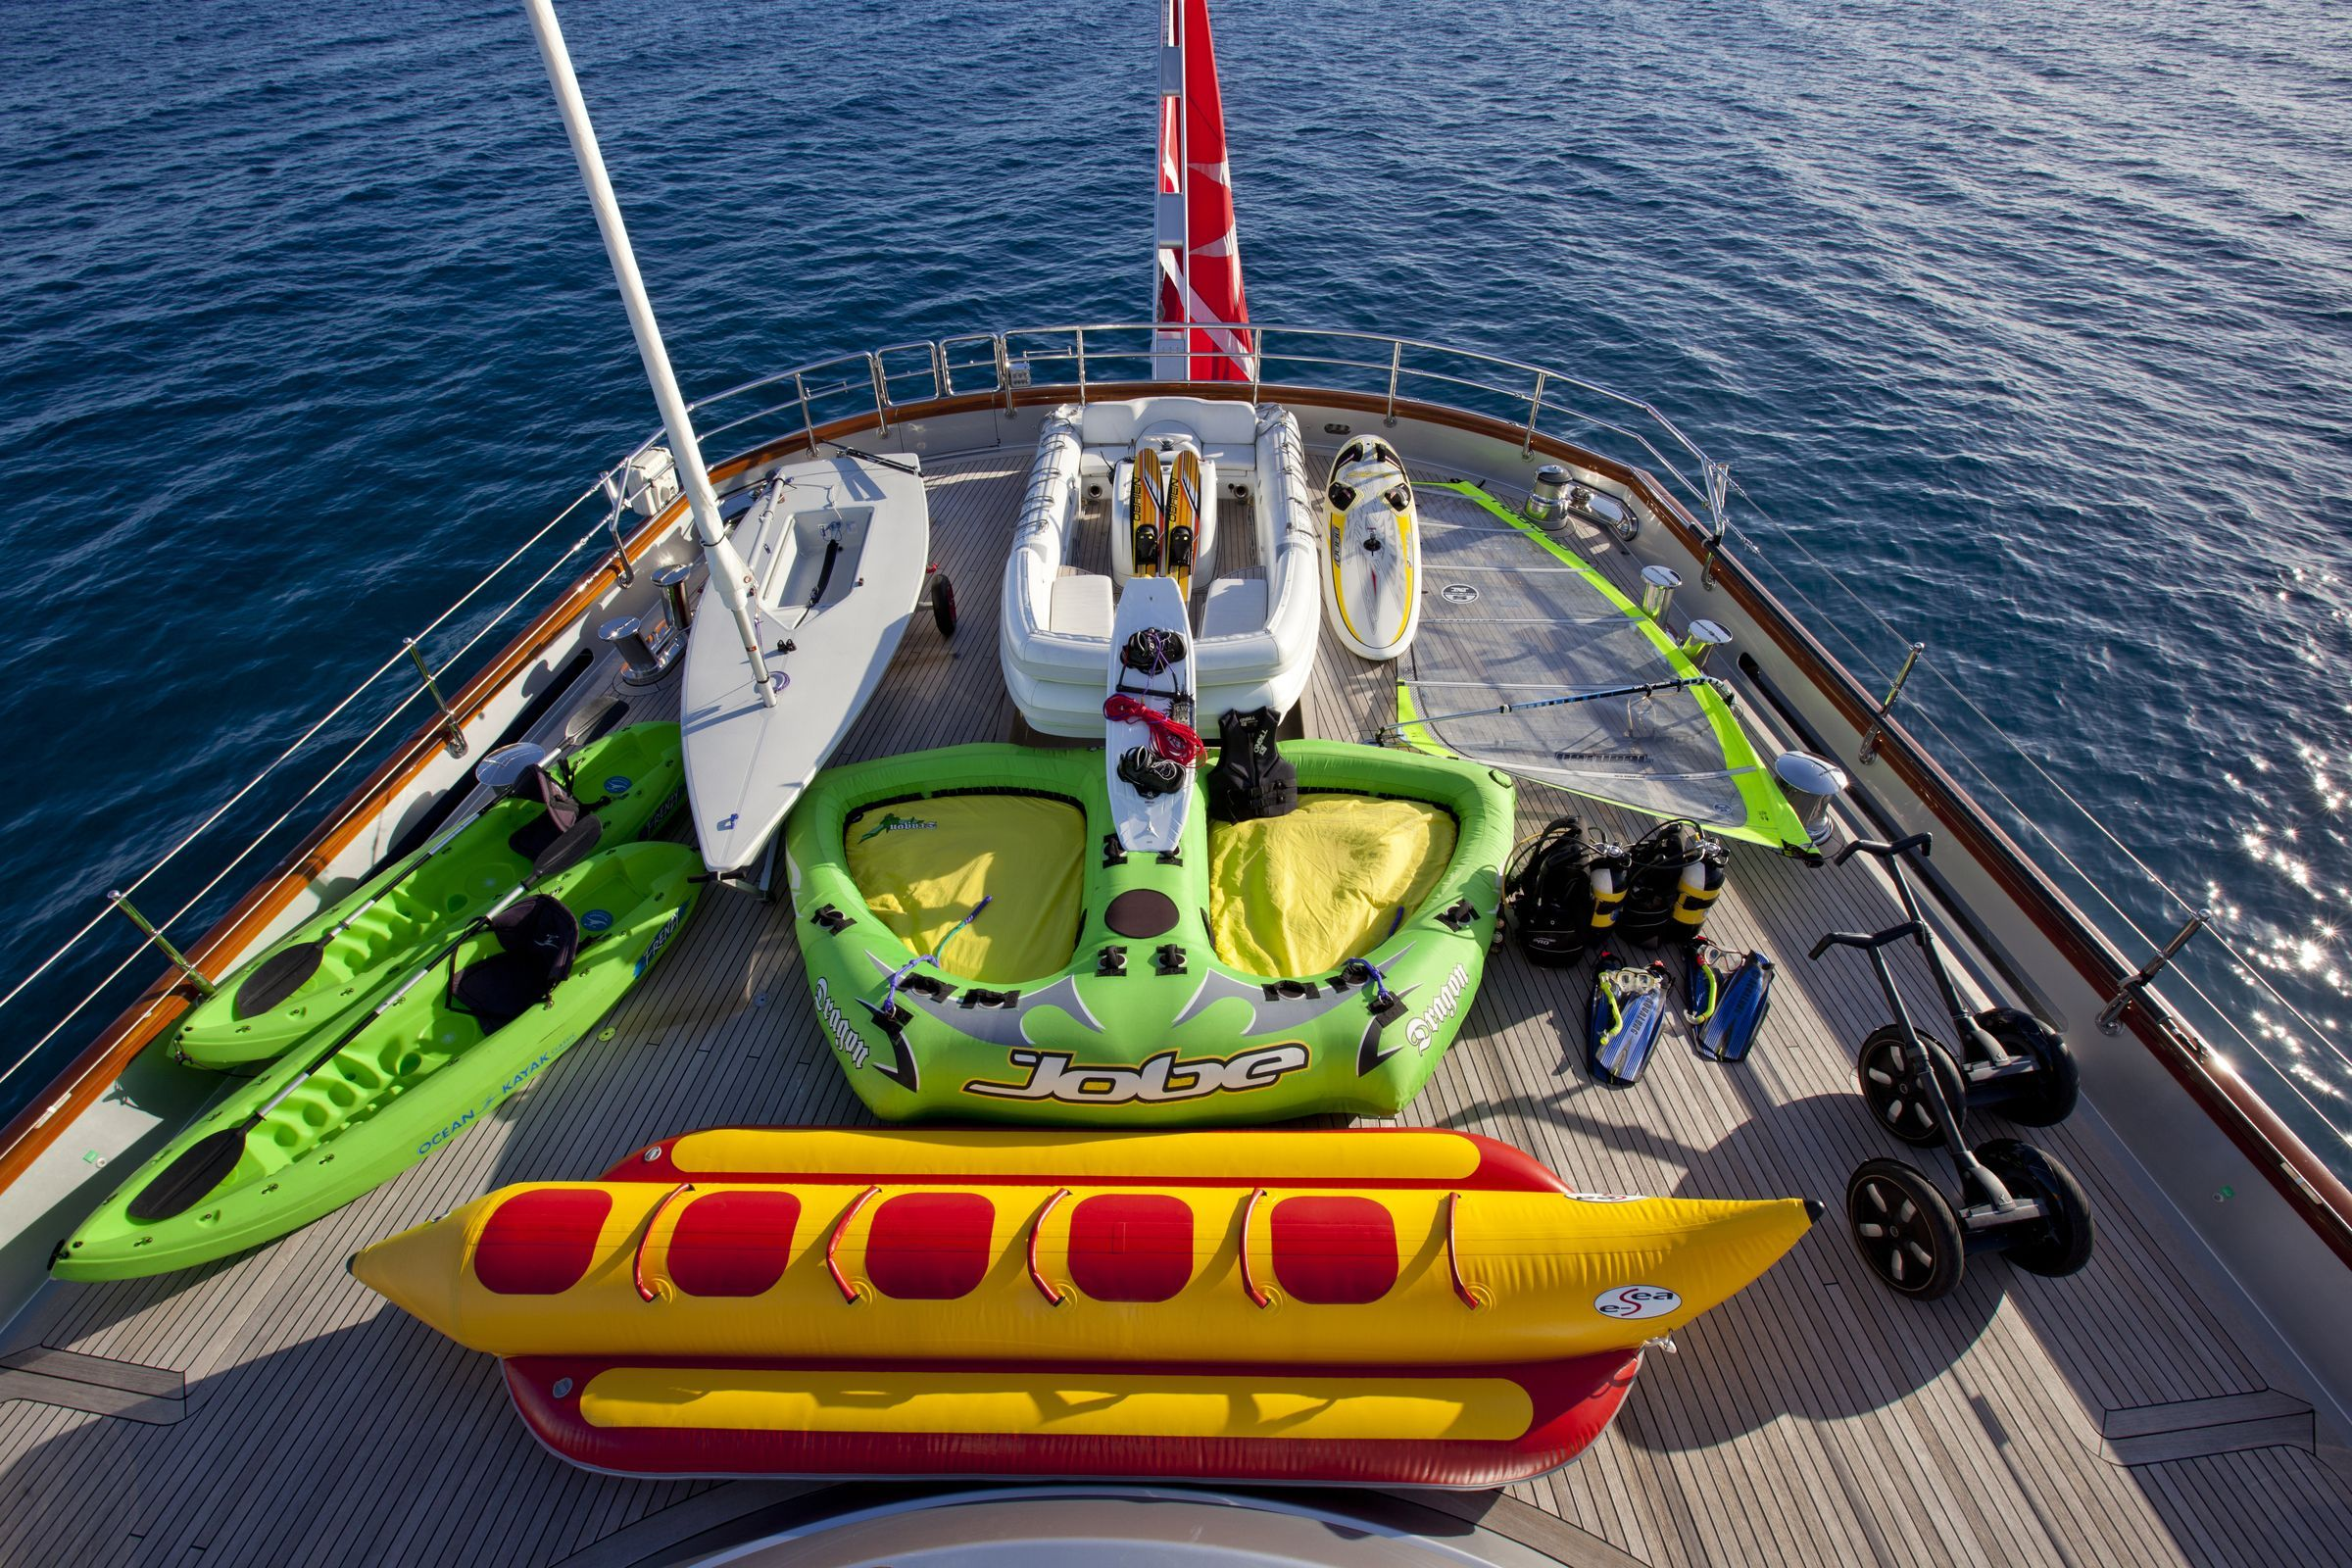 MALTESE--FALCON #WaterToys disponible para charters performance.com.mx